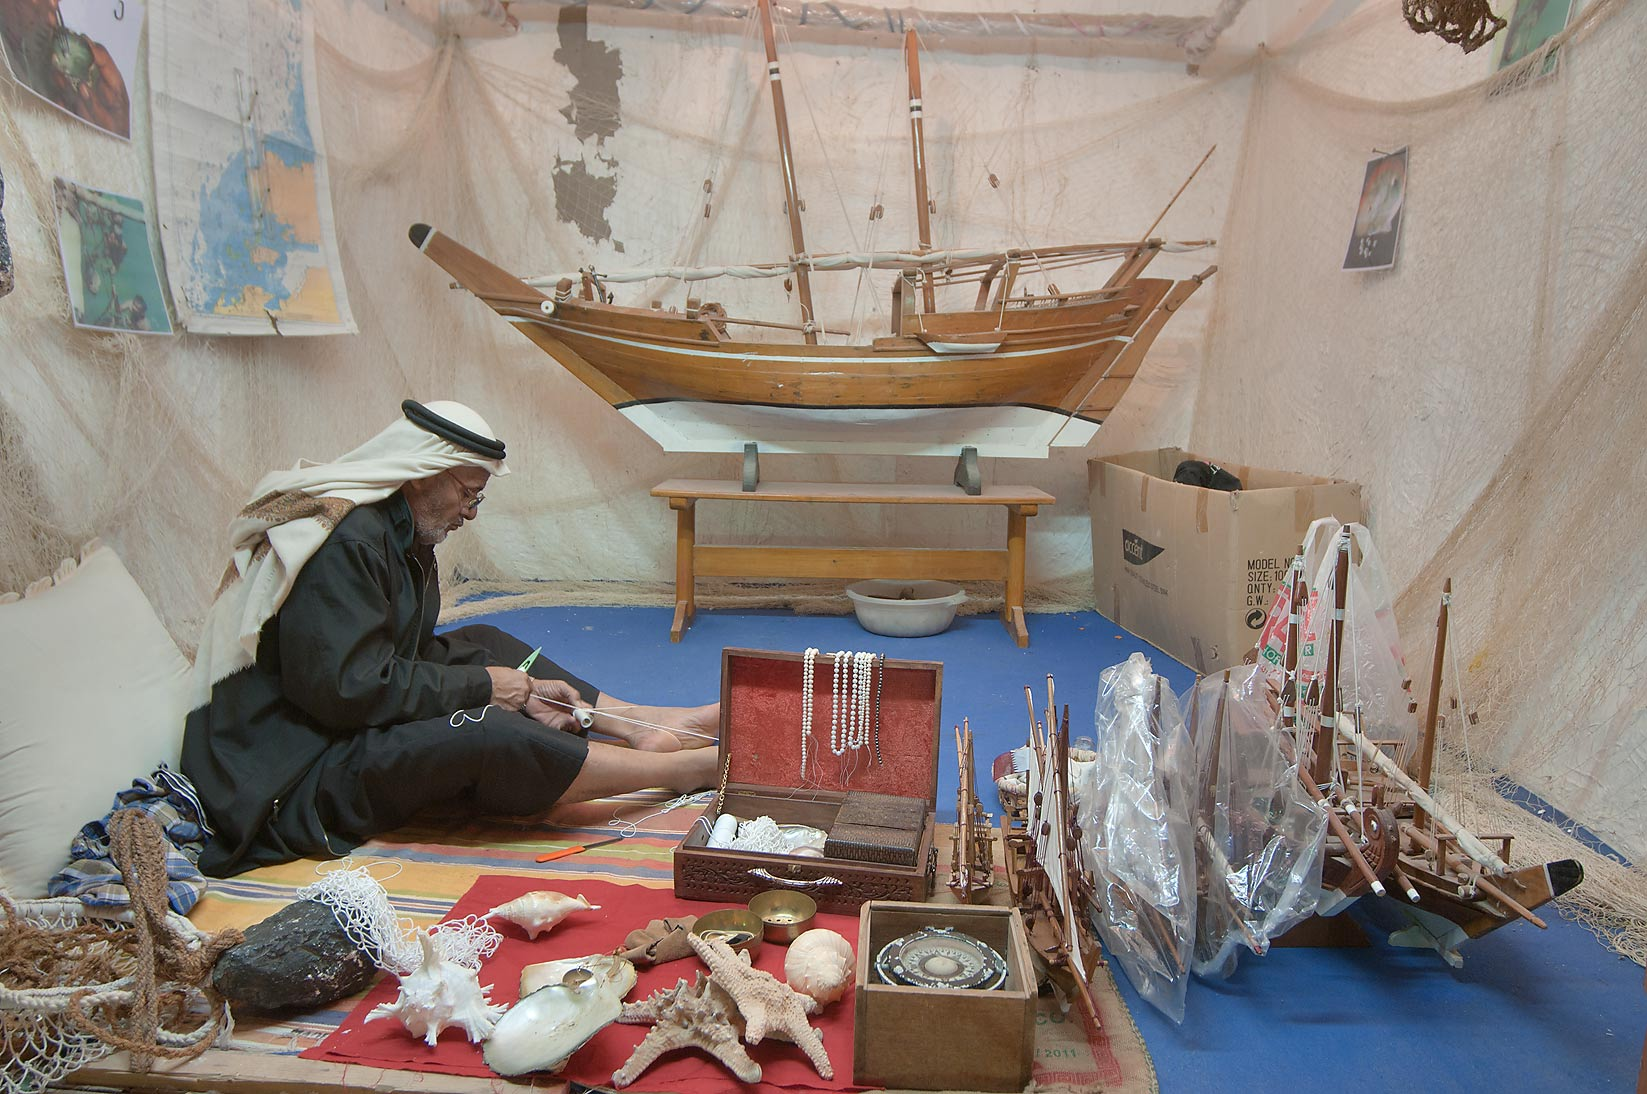 Ship model craft show in Rumeilah Park. Doha, Qatar